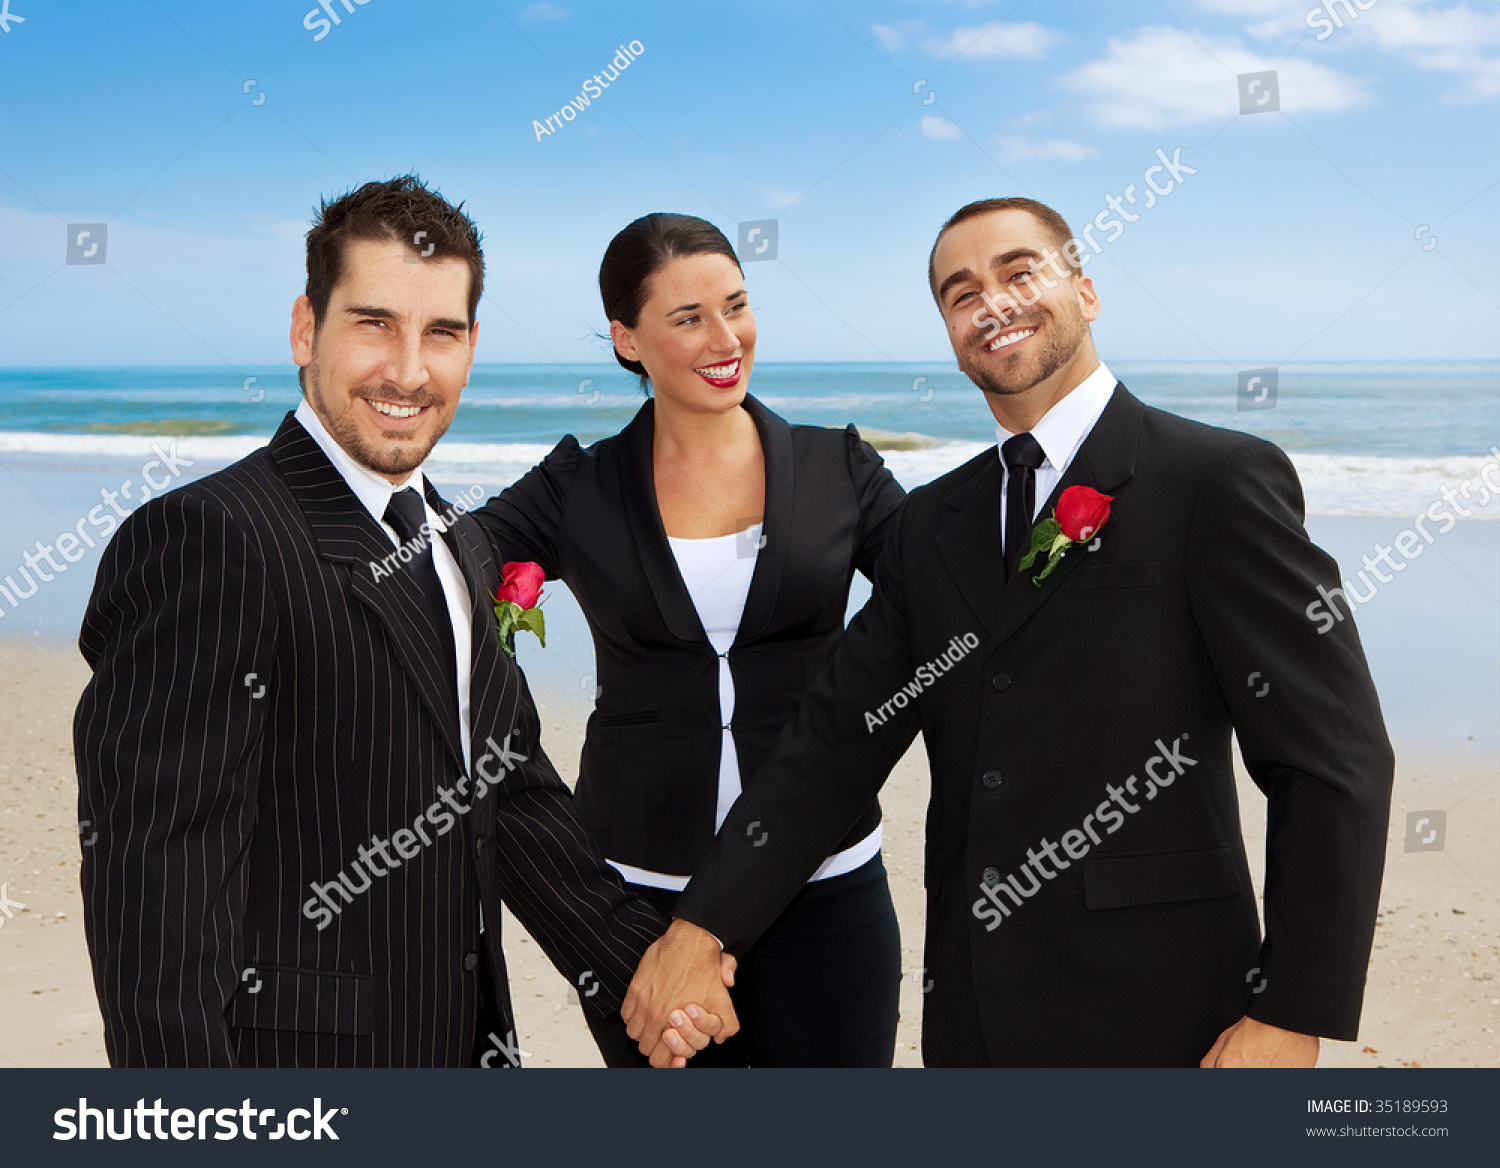 Gay men looking for marriage